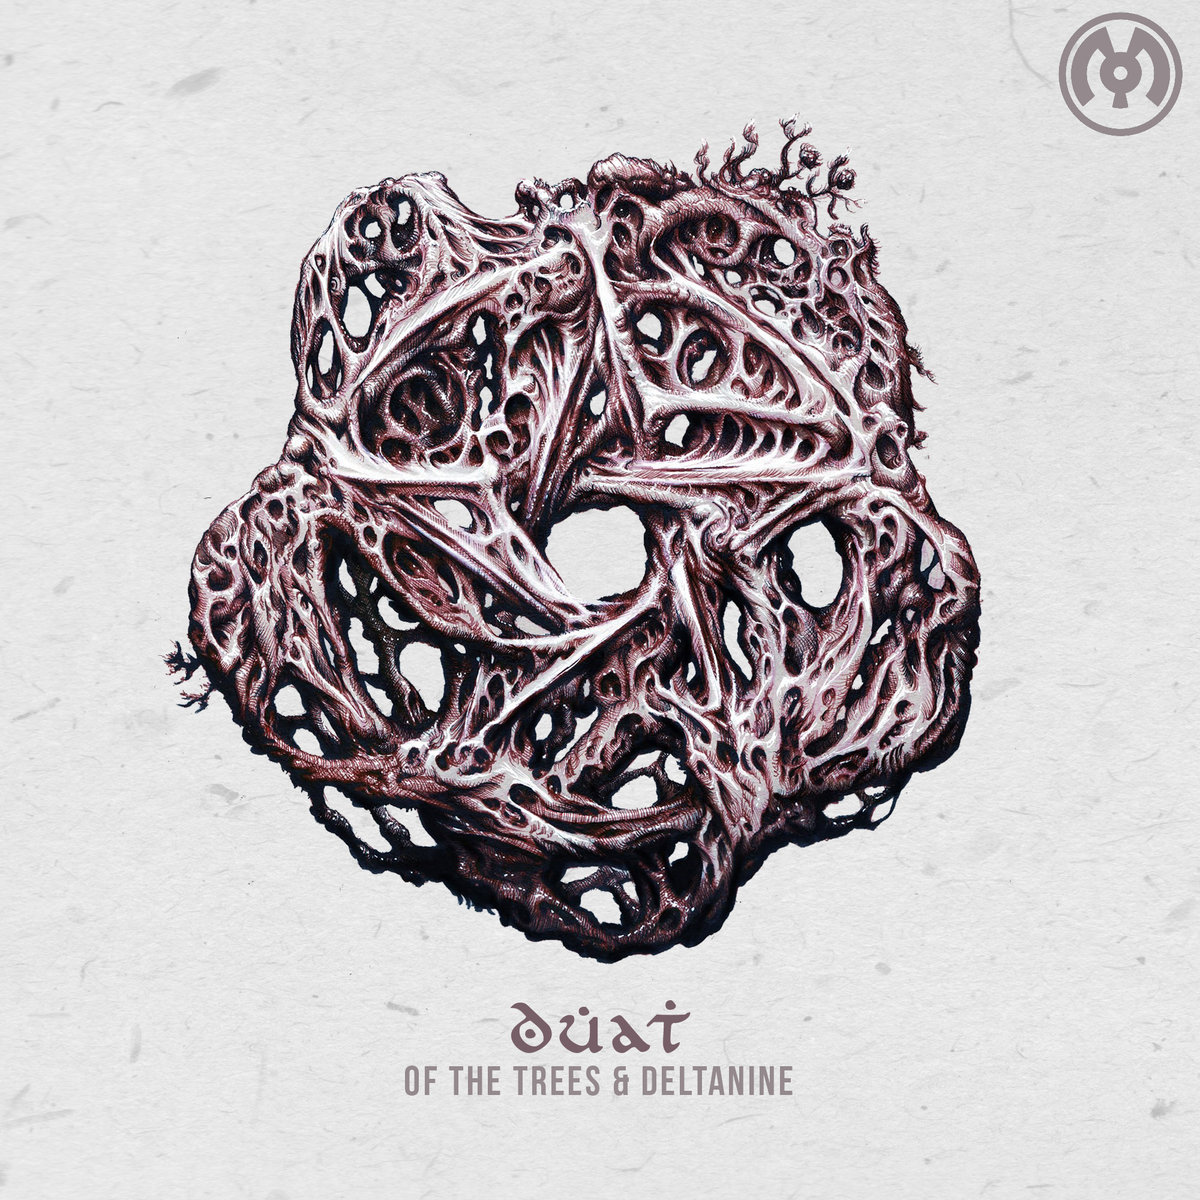 Of the Trees & DELTAnine - Duat (artwork)